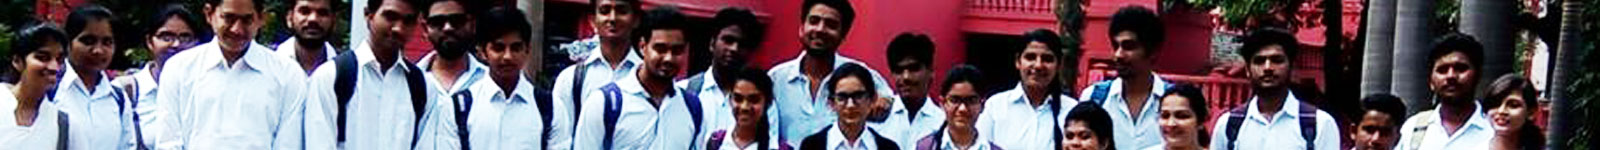 student_banner1